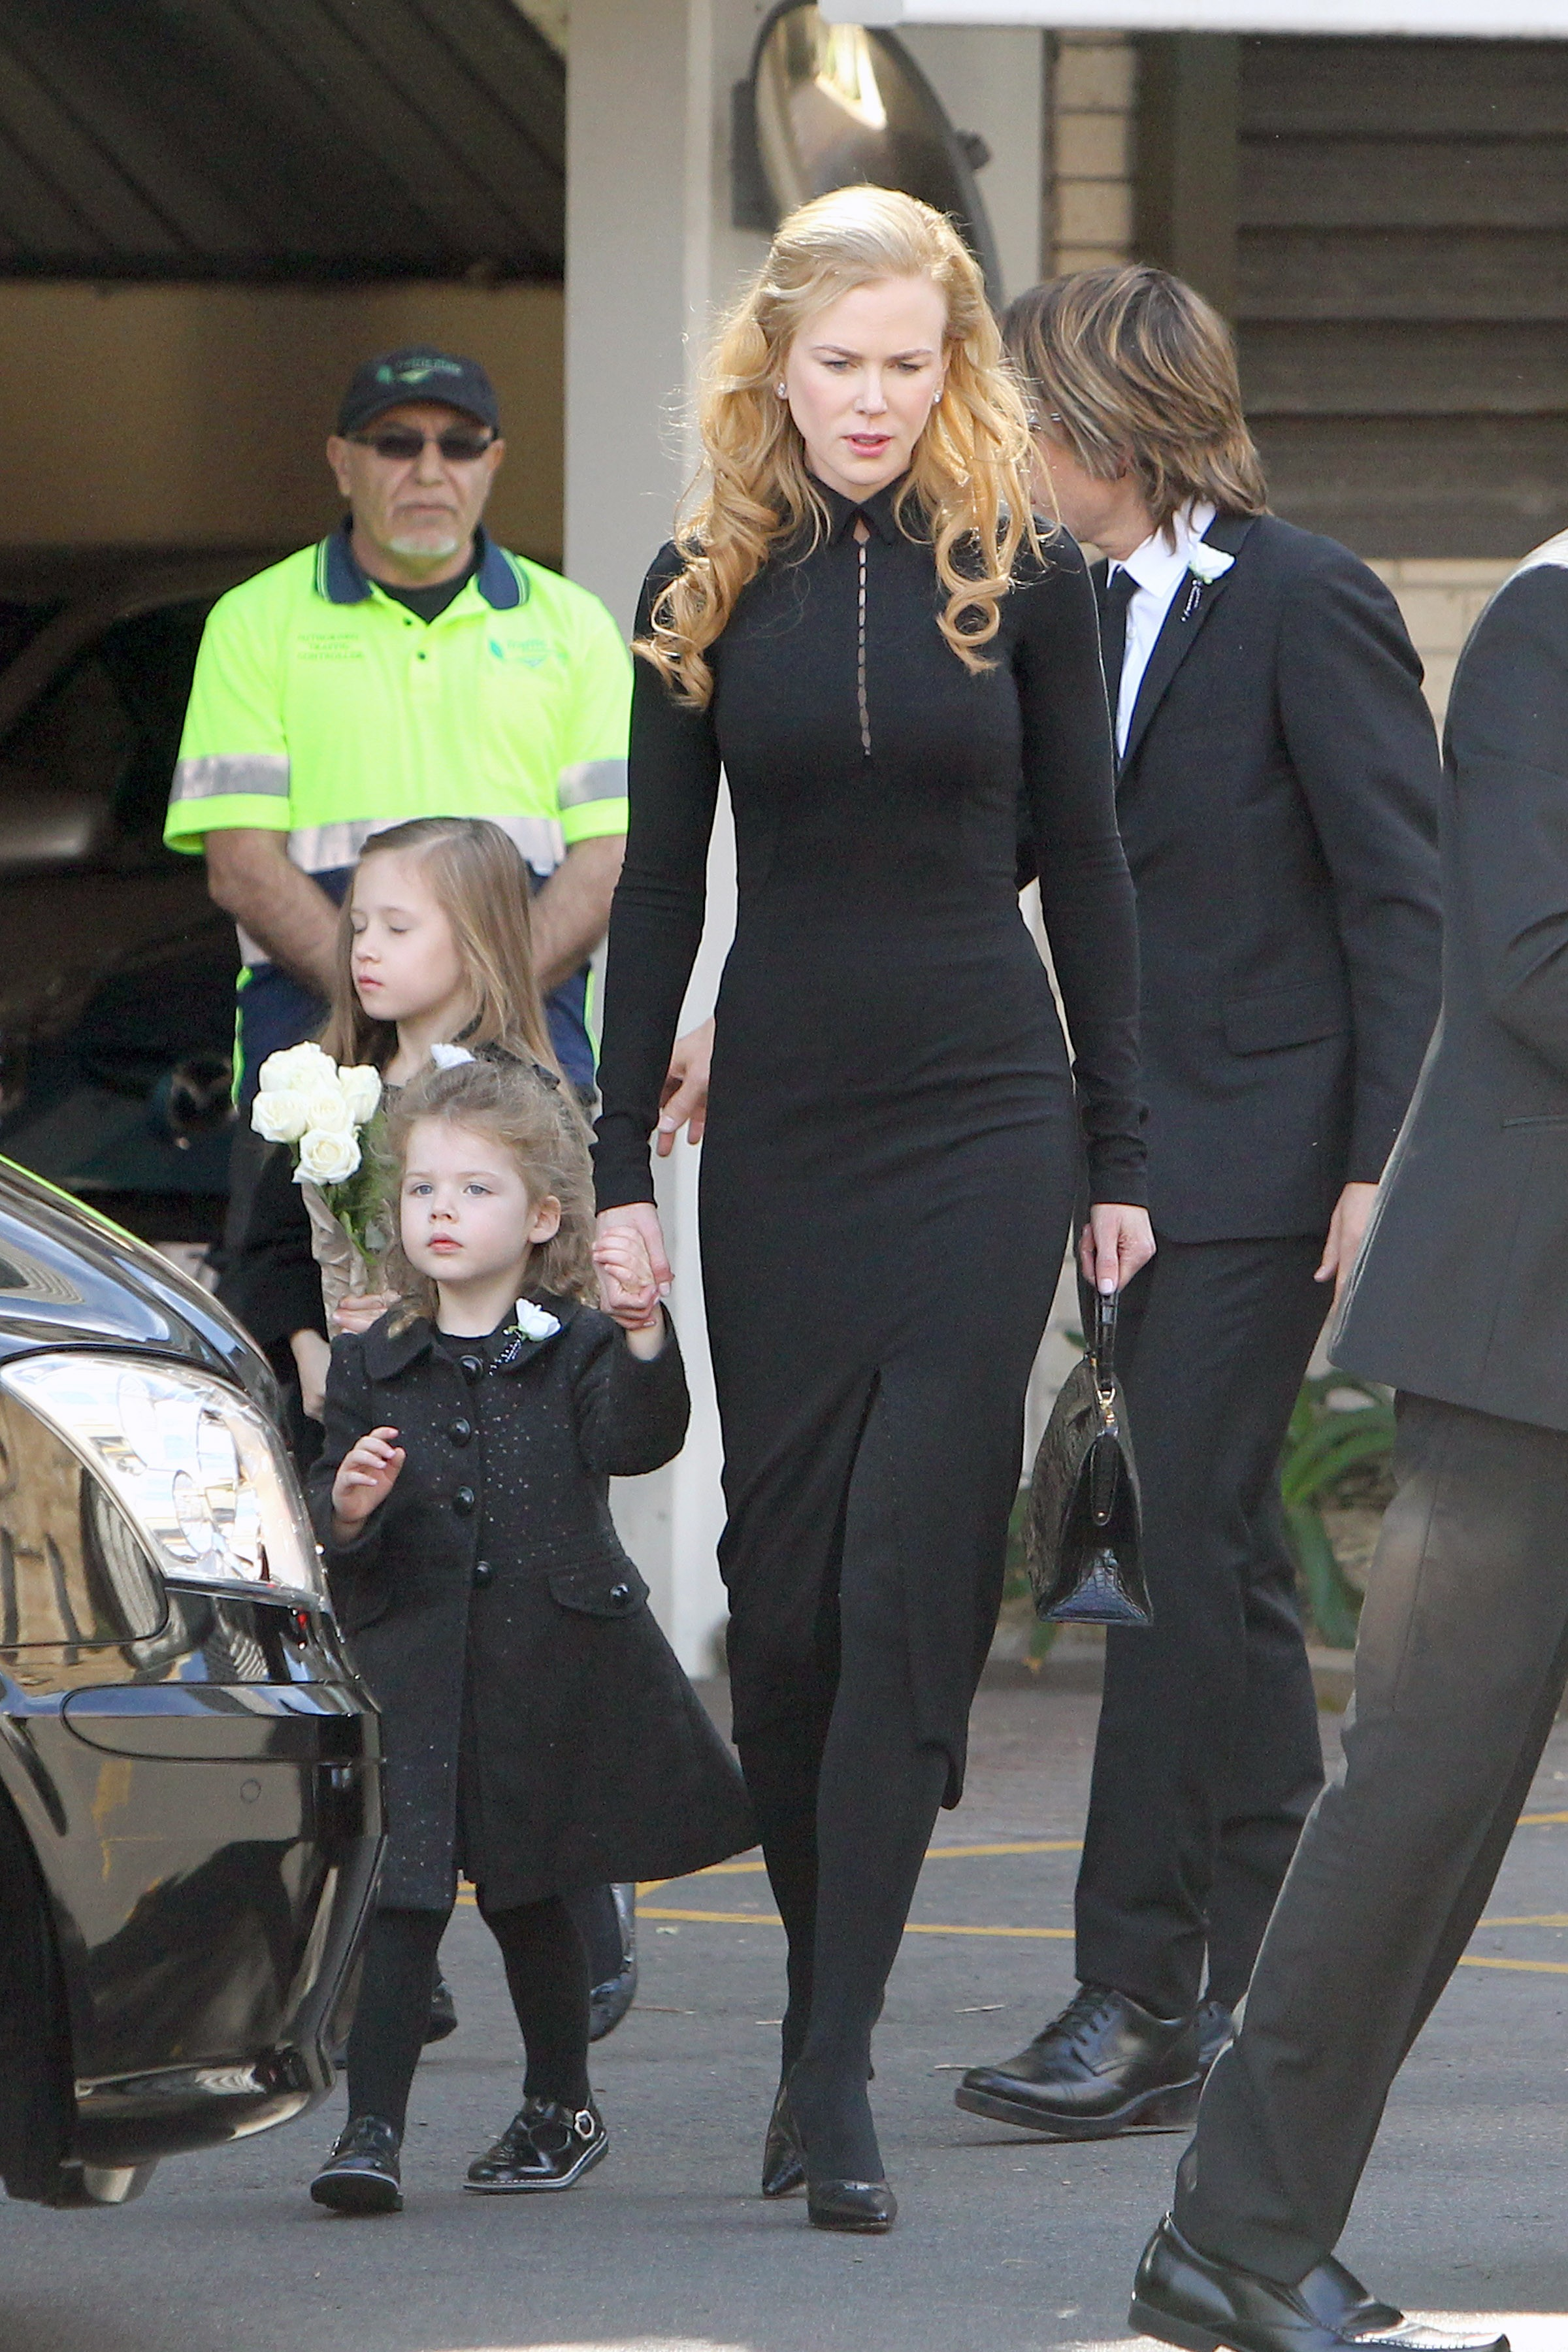 Nicole Kidman, Keith Urban, e filhas Sunday Rose e Faith Margaret (Foto: The Grosby Group)